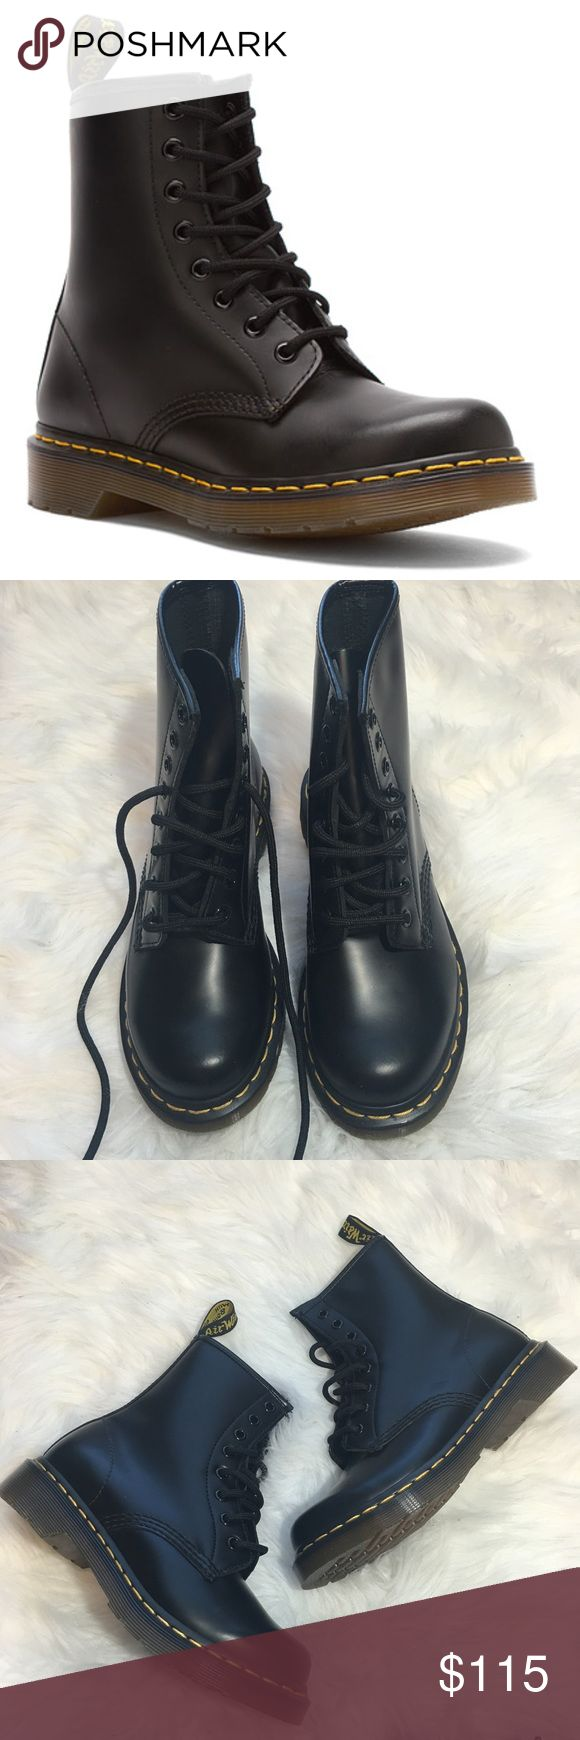 New Dr. Martens Black Boots So cute and perfectly on trend! Brand new and never worn. Size 6 women's. Matte black. No trades!! Dr. Martens Shoes Combat & Moto Boots